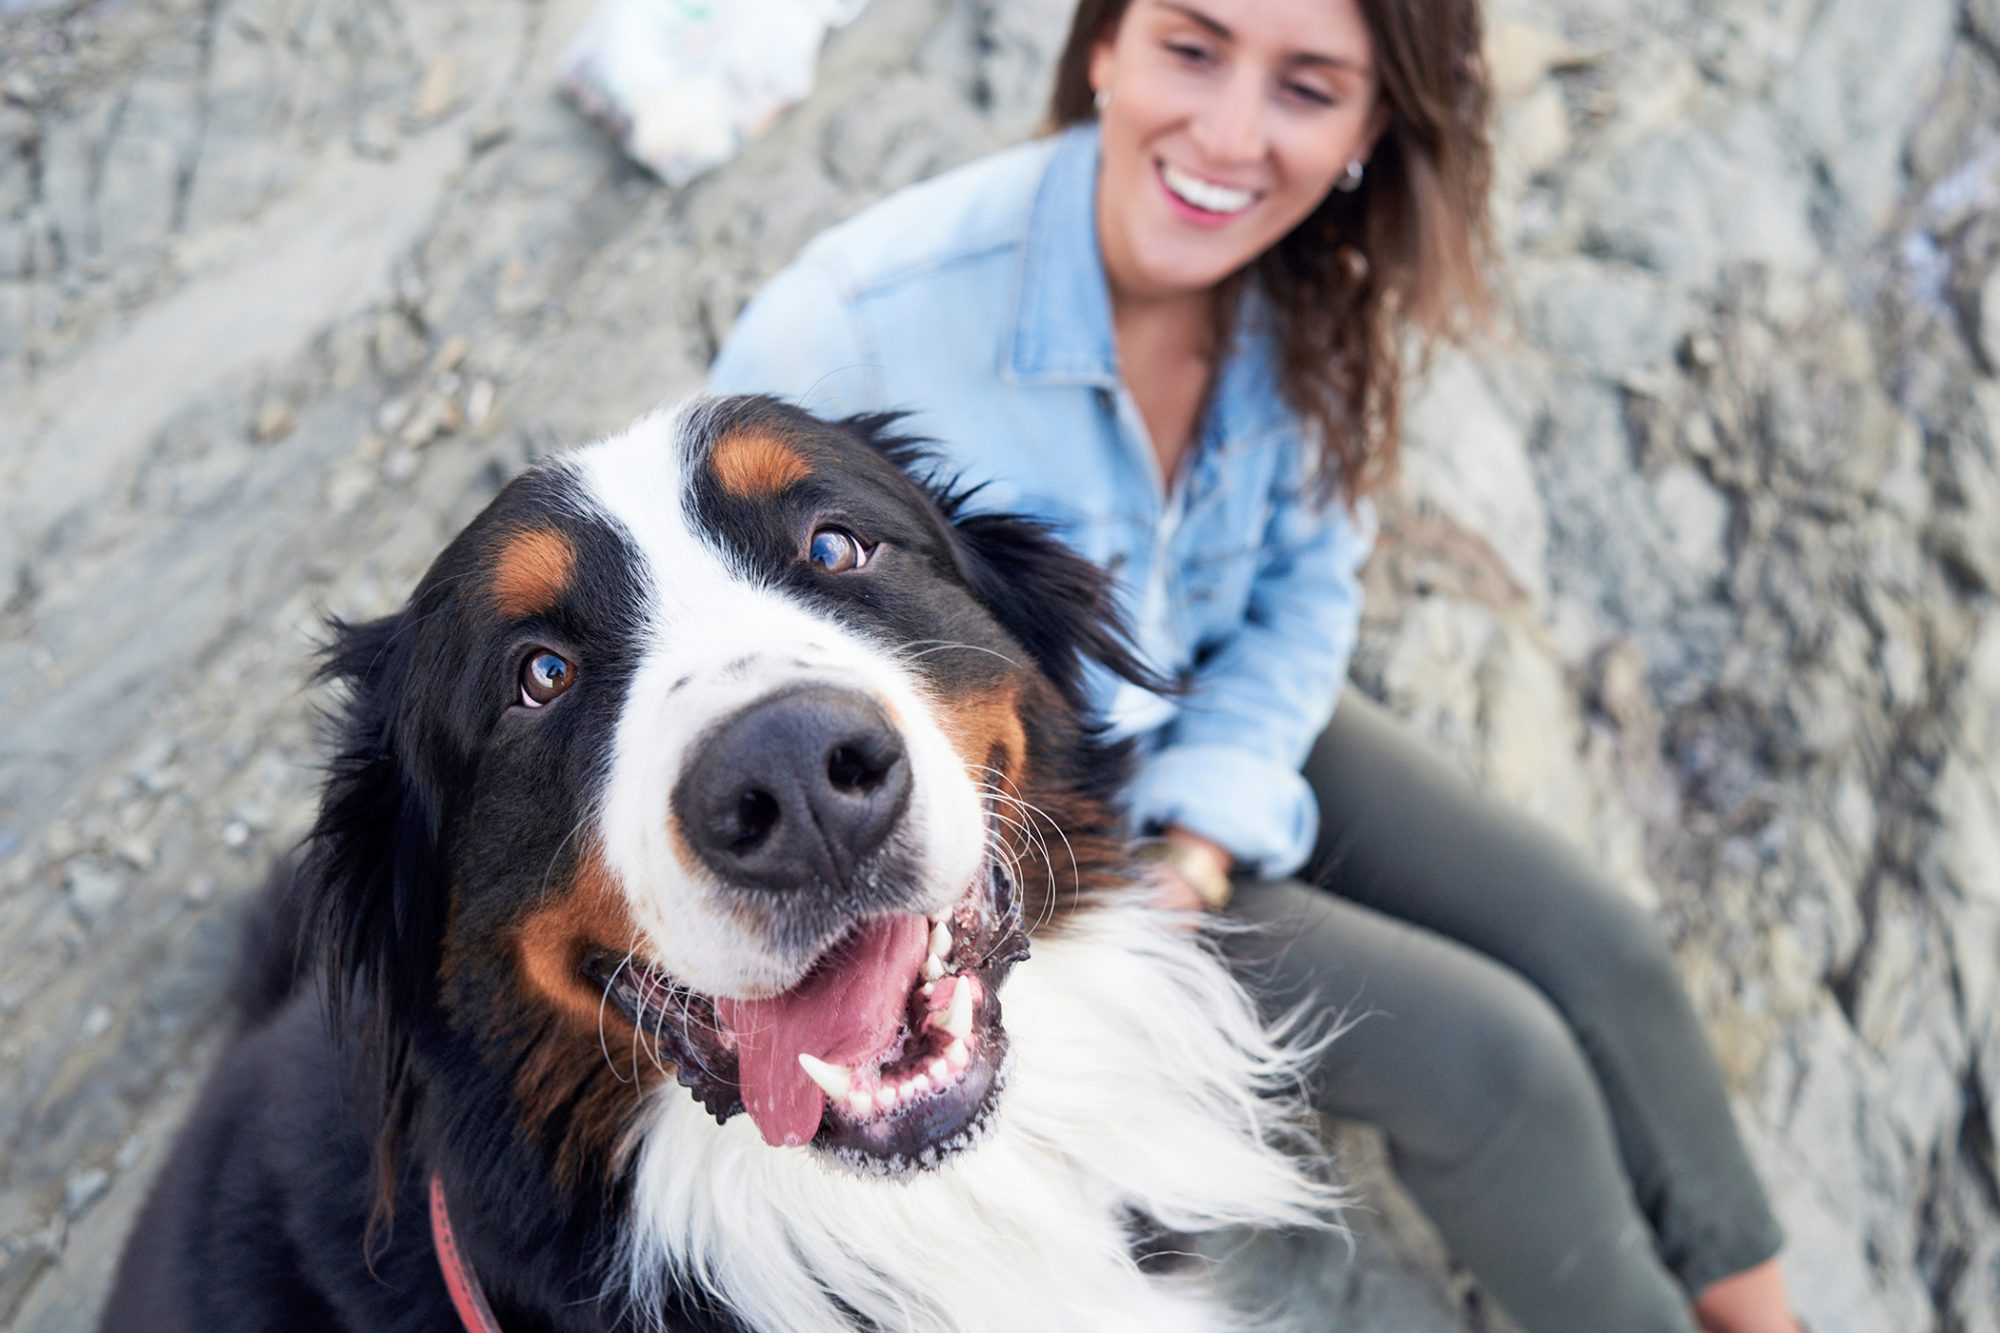 bernese mountain dog smiling at the camera sitting with woman on rocks